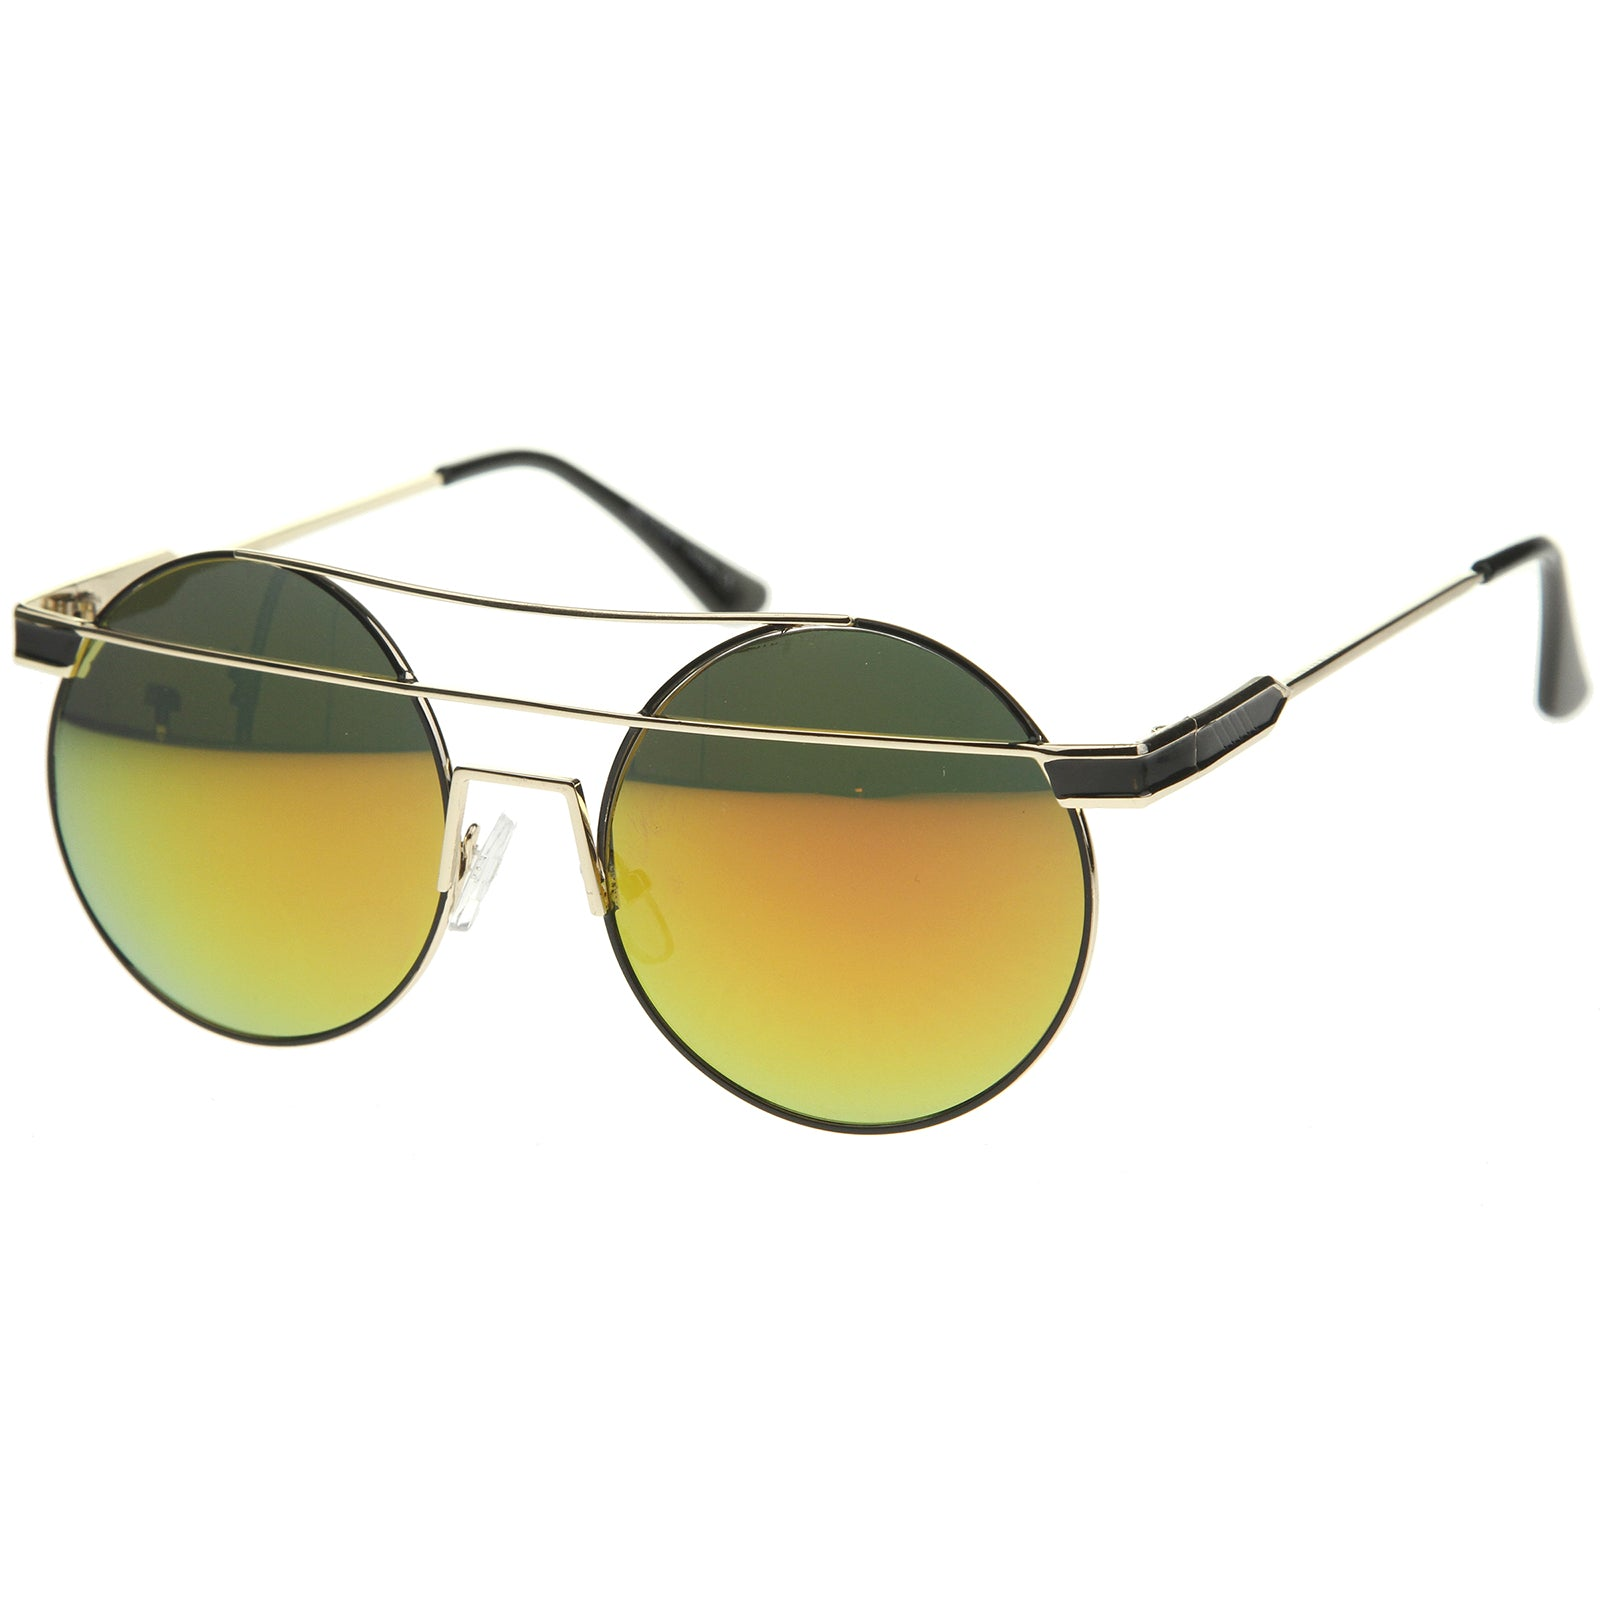 Modern Metal Frame Double Bridge Colored Mirror Lens Round Sunglasses 59mm - sunglass.la - 10